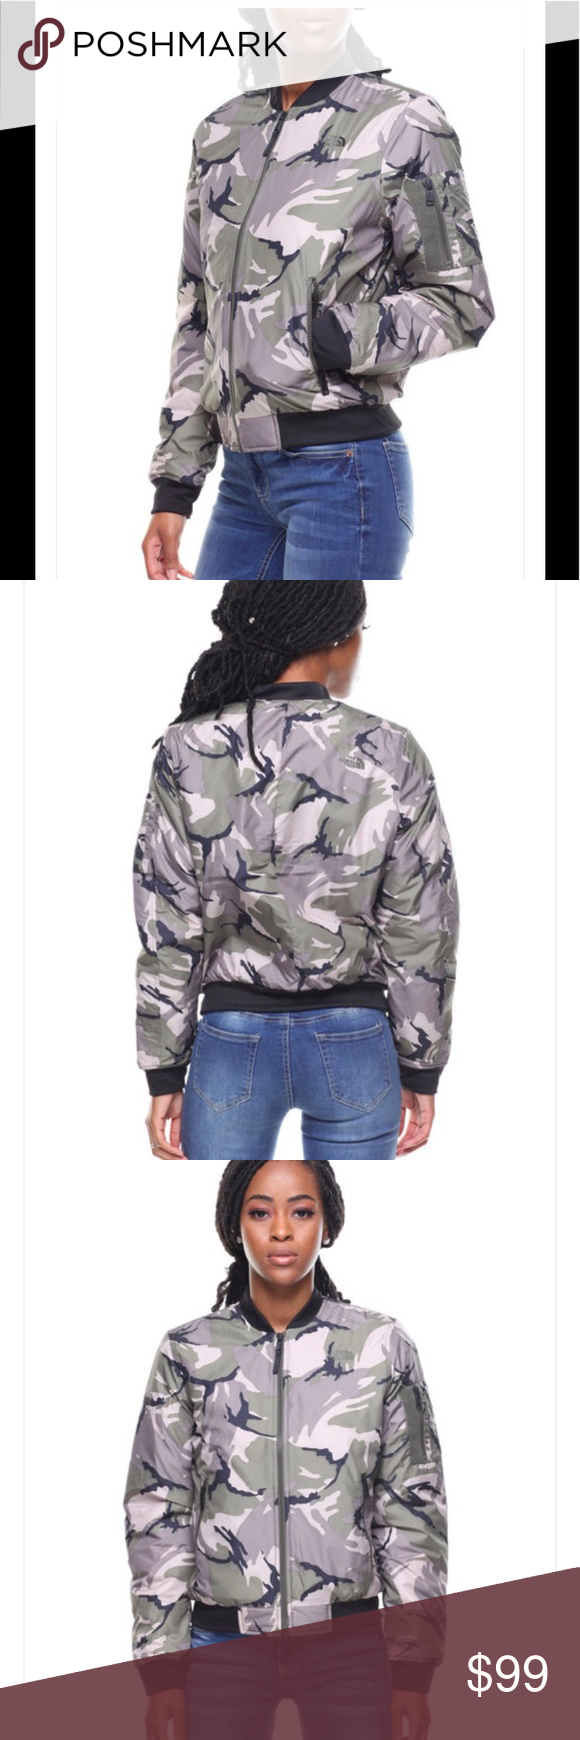 1bbfb1139 The North Face Barstol Bomber Camo jacket NWT Love love love this ...